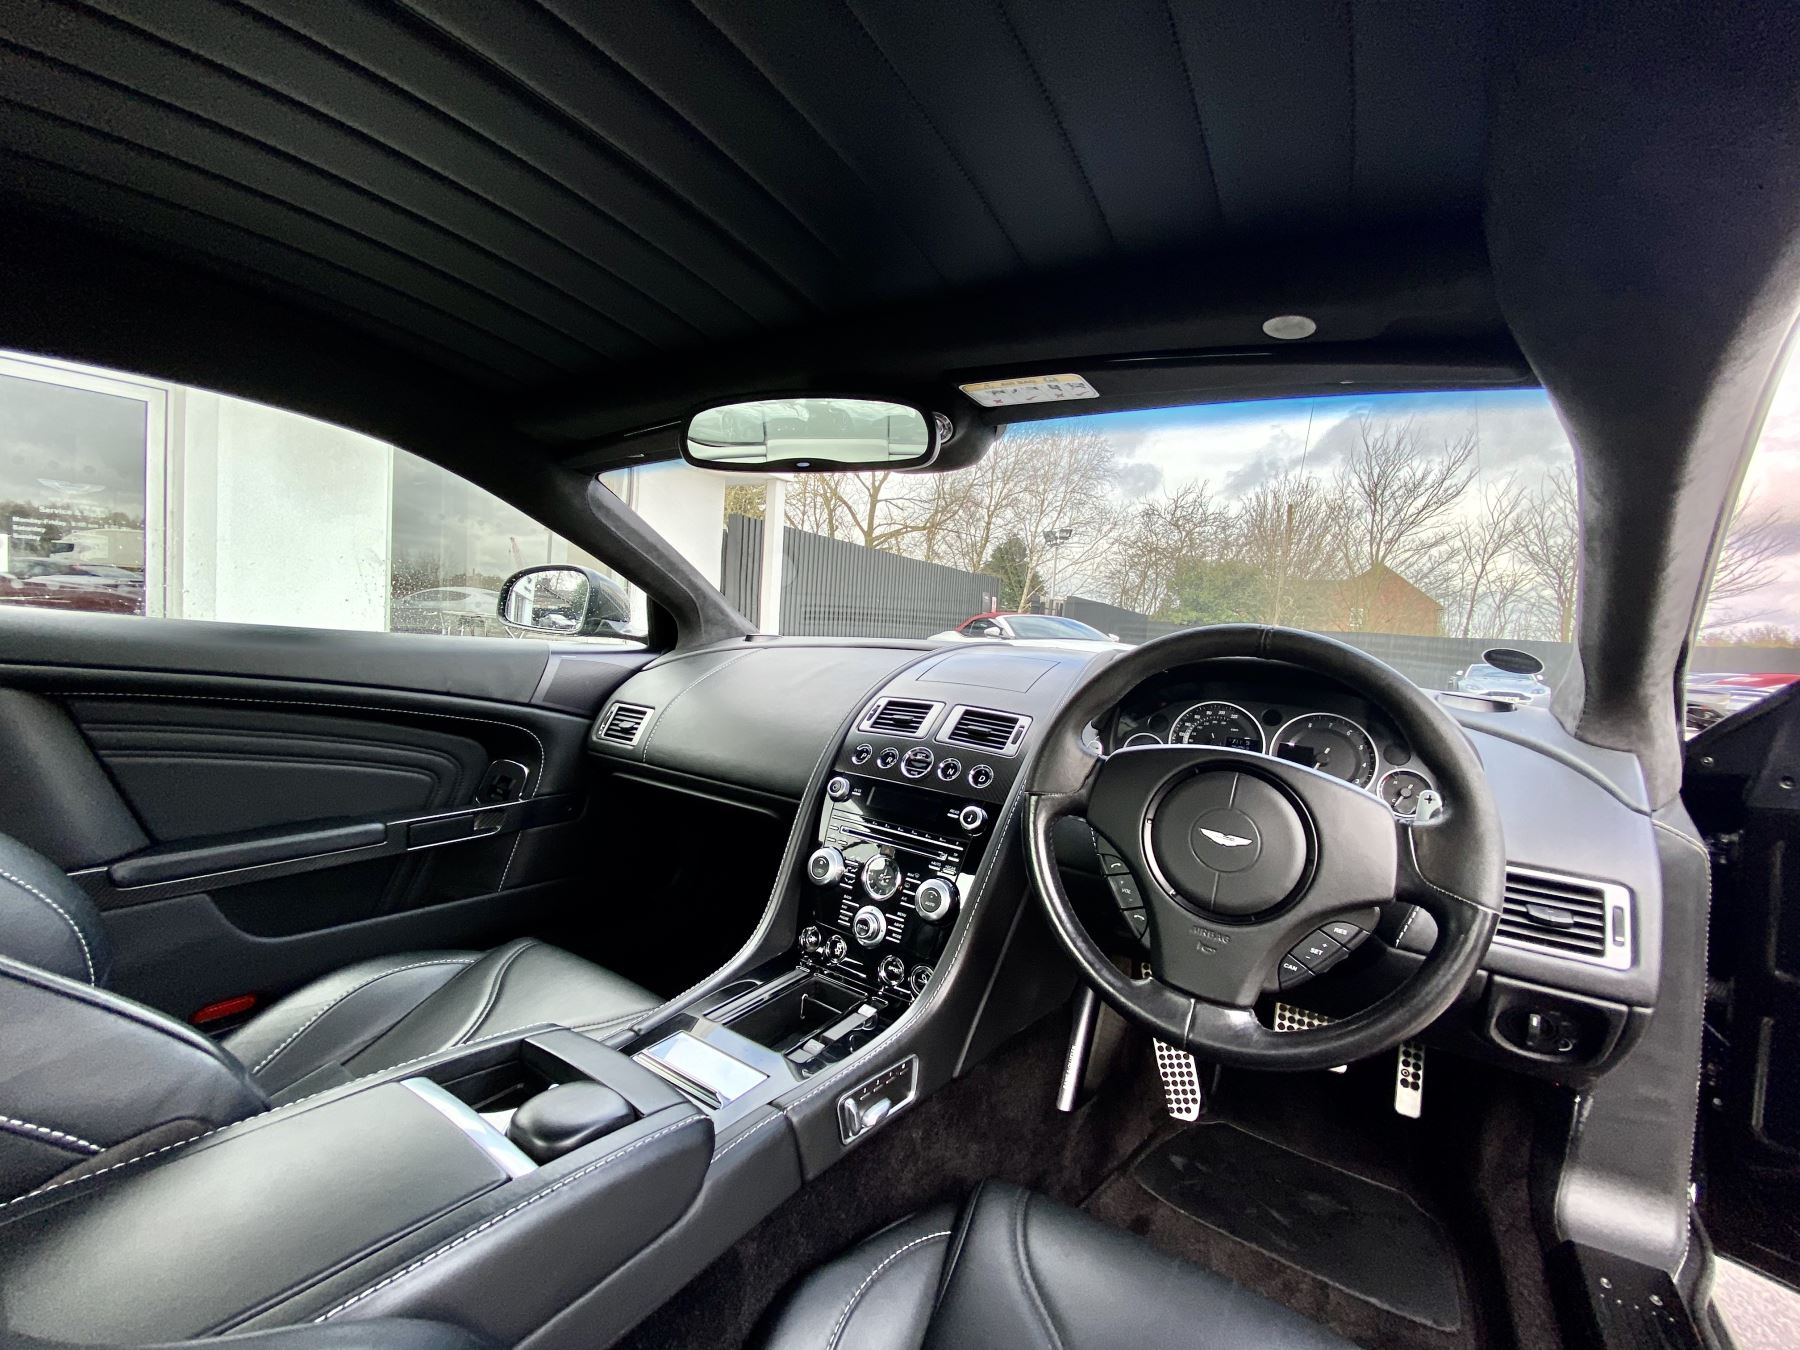 Aston Martin DBS Carbon Edition V12 2dr Touchtronic image 11